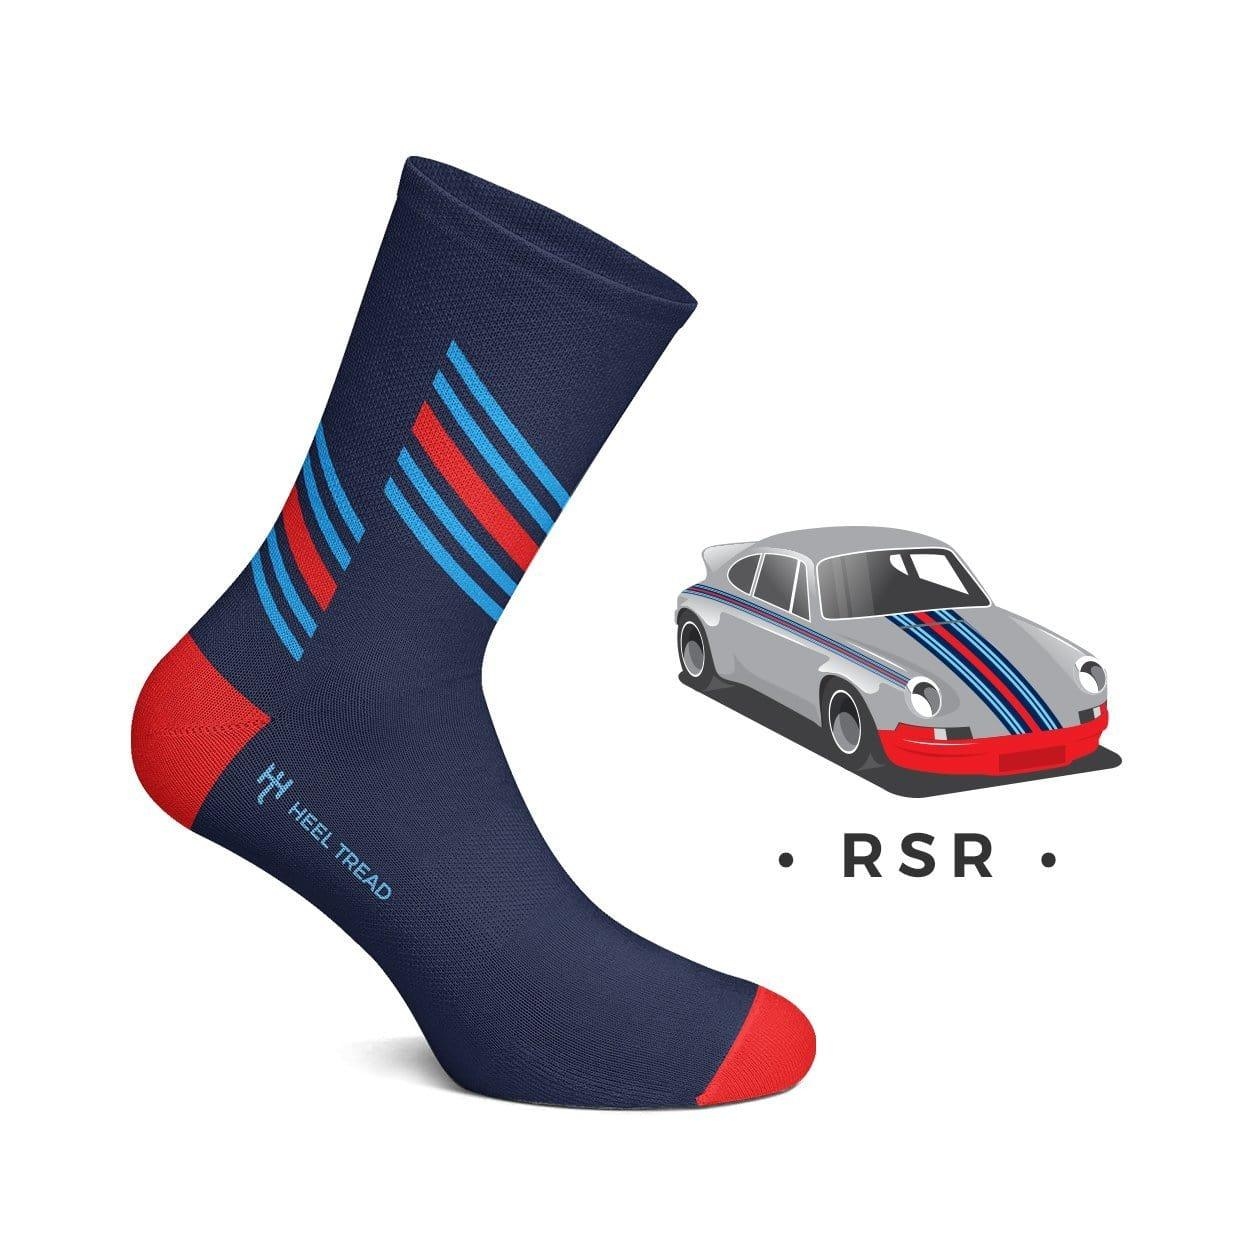 RSR SOCKS - Corleon